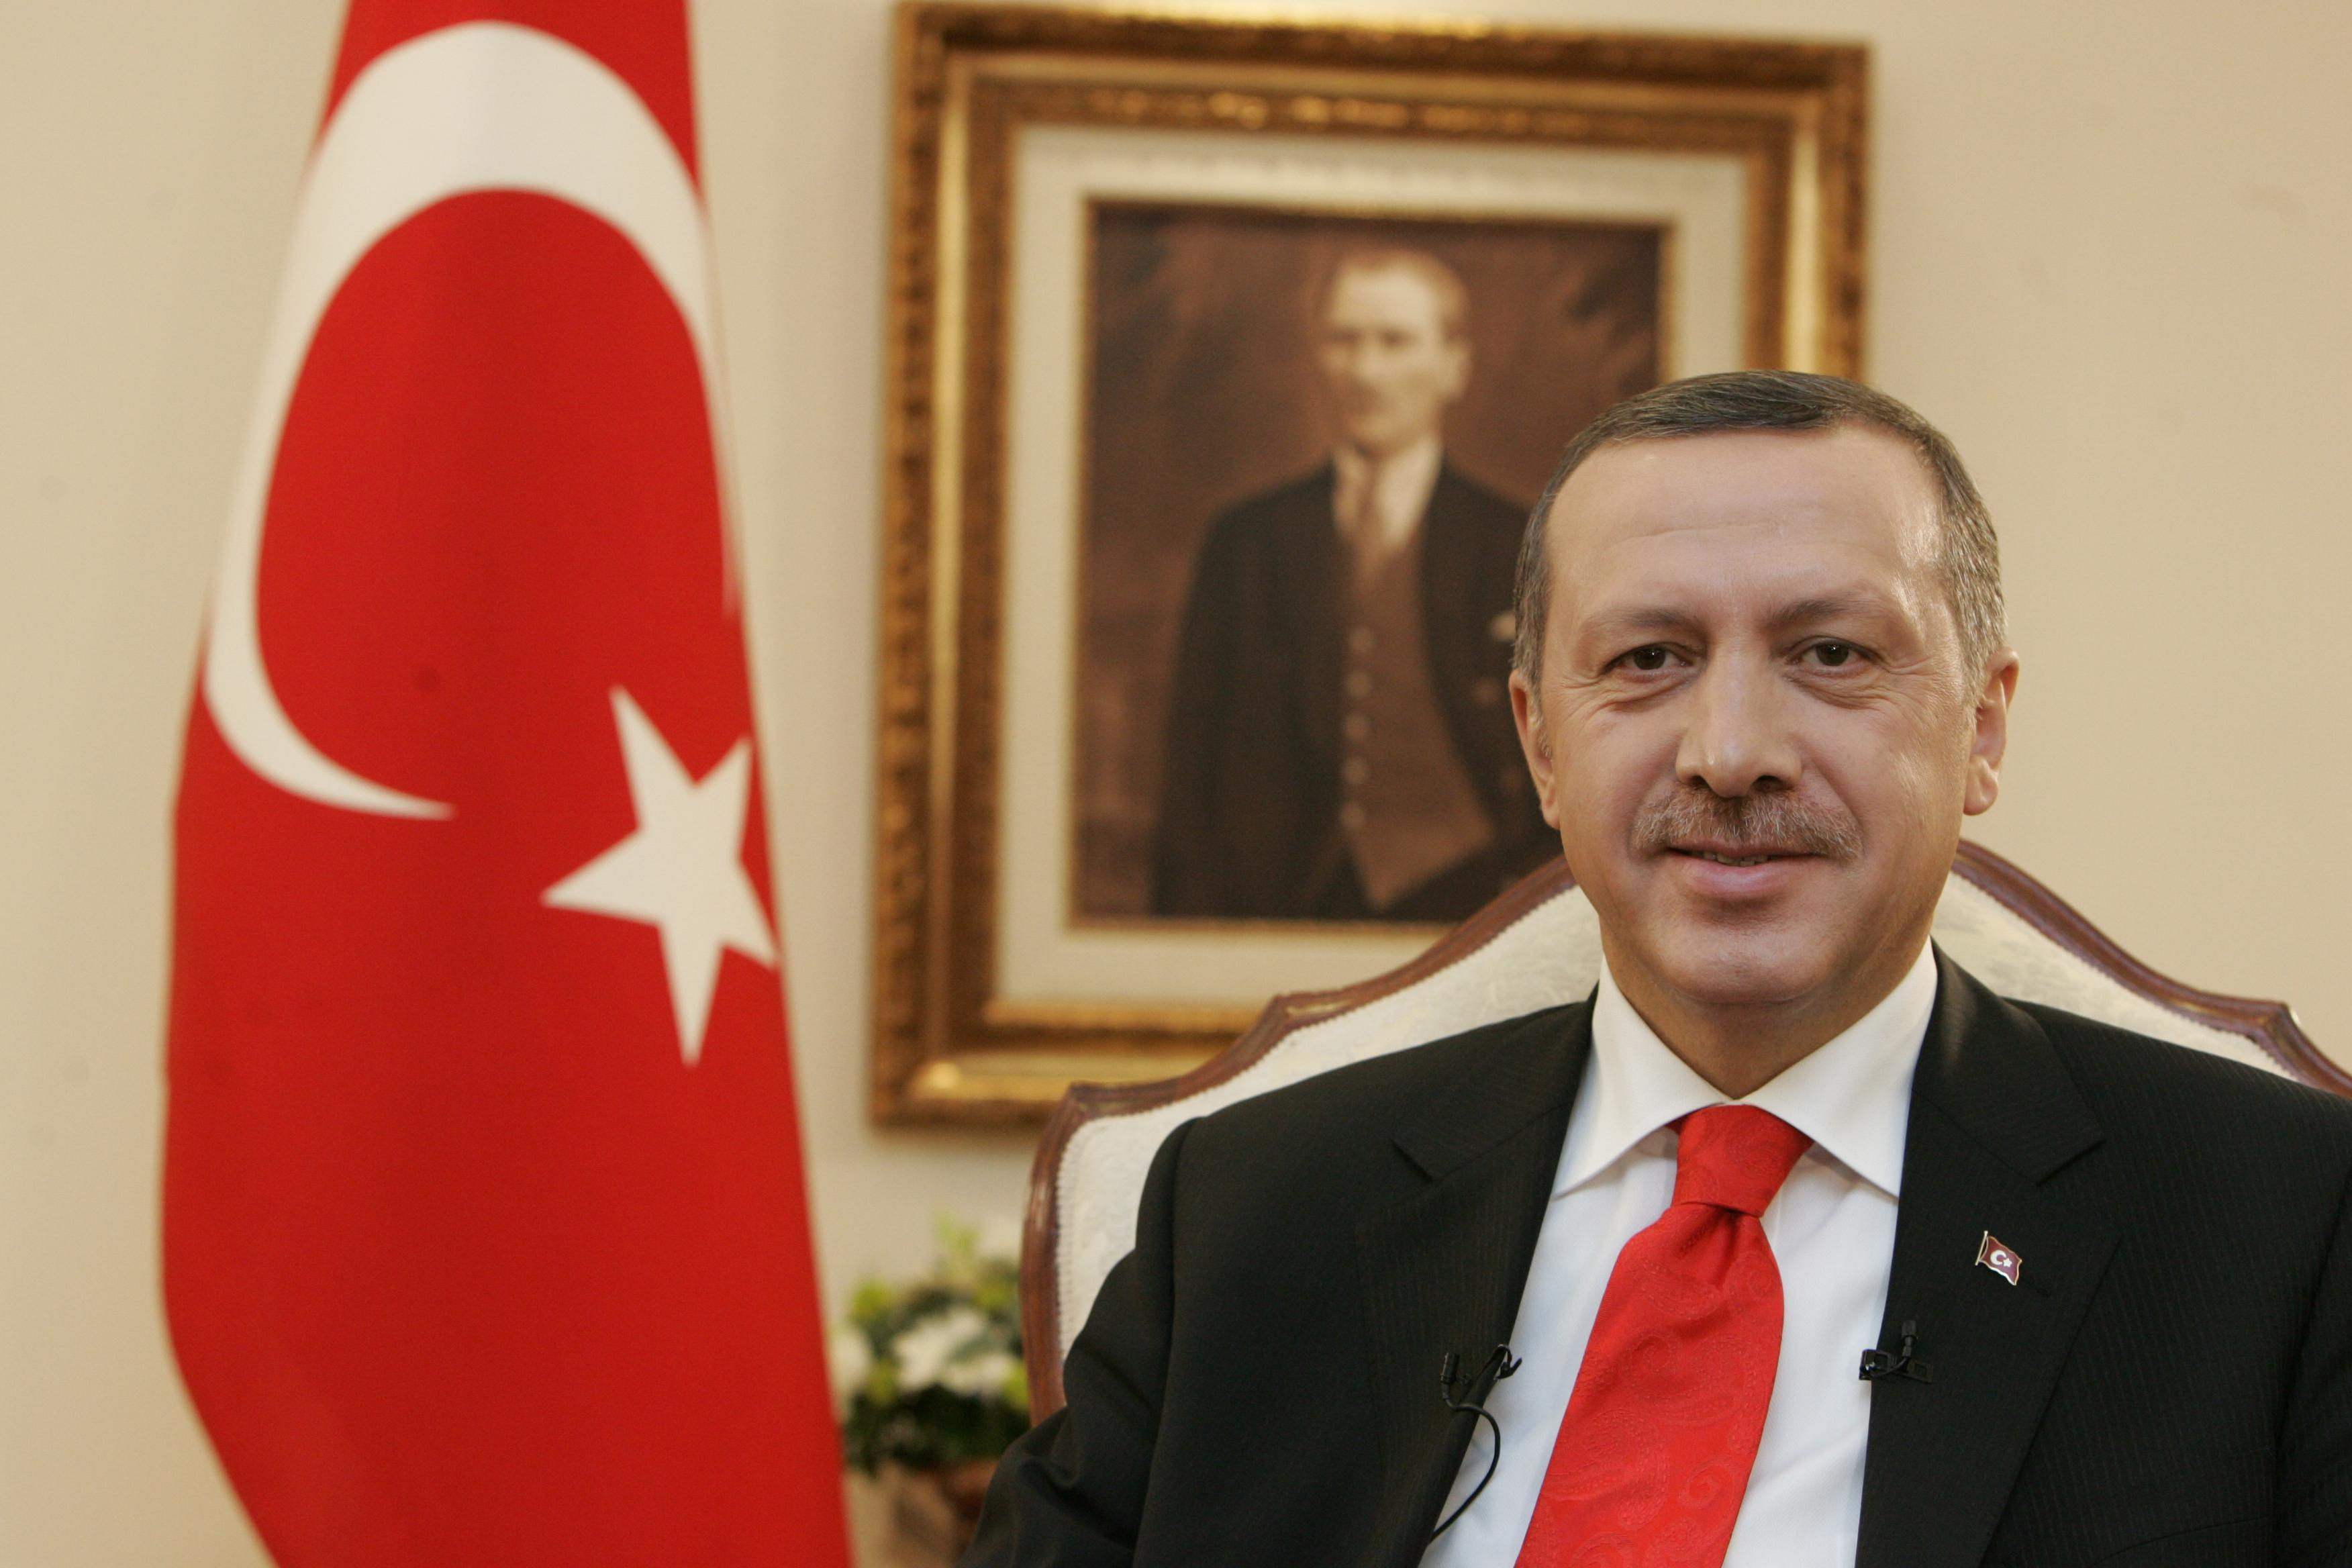 Recep Tayyip Erdogan Wallpaper Hd Wallpapers Hd Images